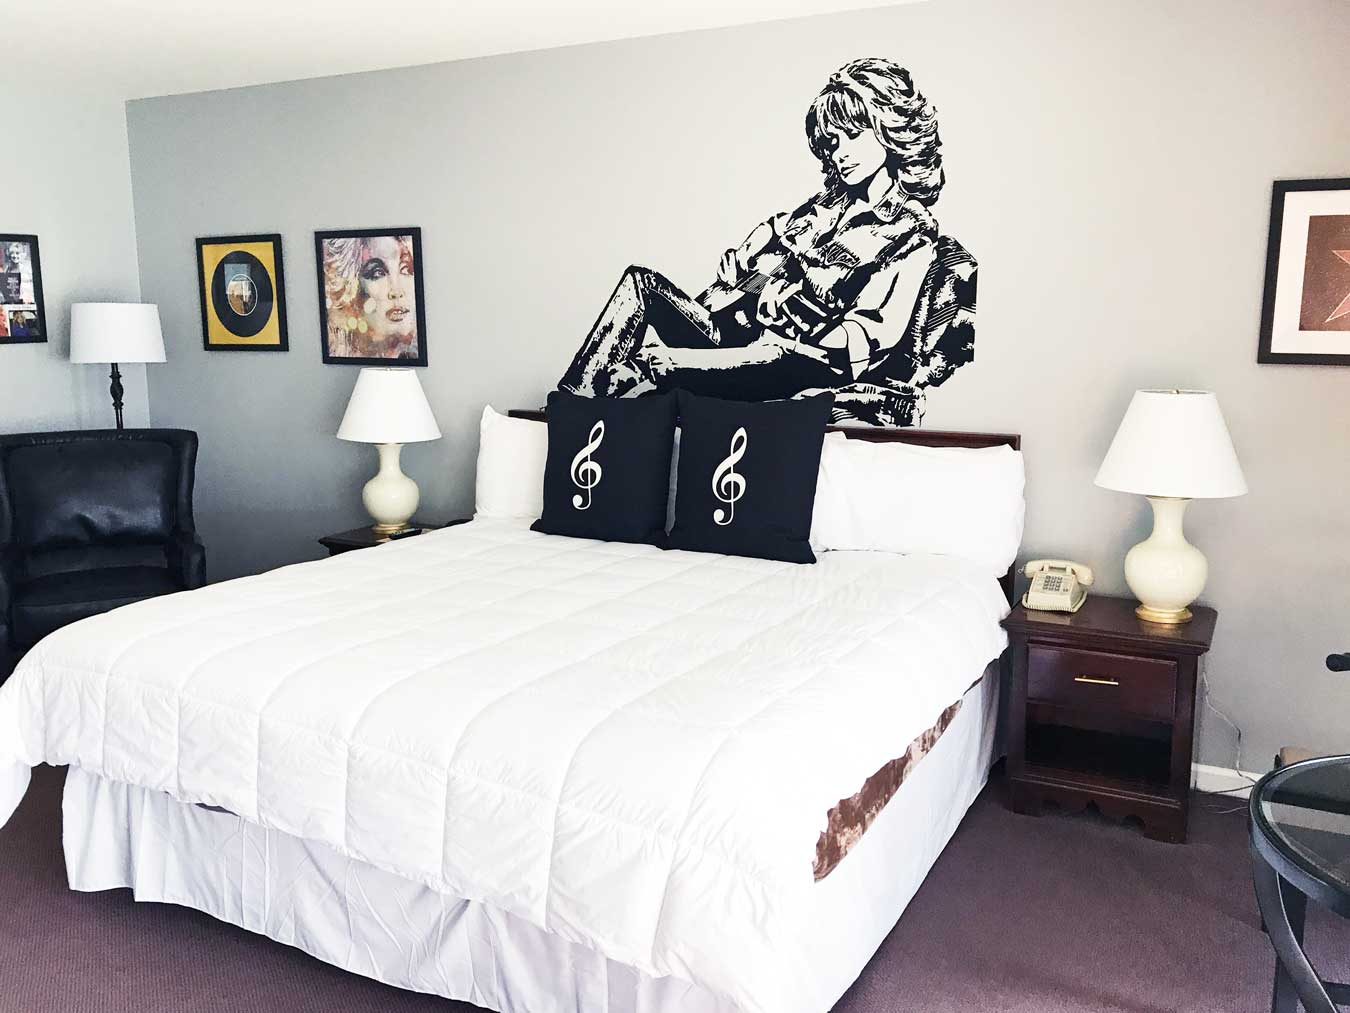 Dolly Parton Themed Room At Don Hall's Guesthouse in Fort Wayne, Indiana - What a fun place to stay! // The Weekend Getaway You've Overlooked: Visit Fort Wayne, Indiana [via Wading in Big Shoes] // Located equidistantly from Chicago, Cincinnati, and Detroit, Fort Wayne, Indiana is a fun midwest destination that captures a perfect blend of city, nature, and local flavors! See what I experienced on my trip to Fort Wayne and learn what makes Indiana's second-largest city the perfect spot for a weekend getaway.